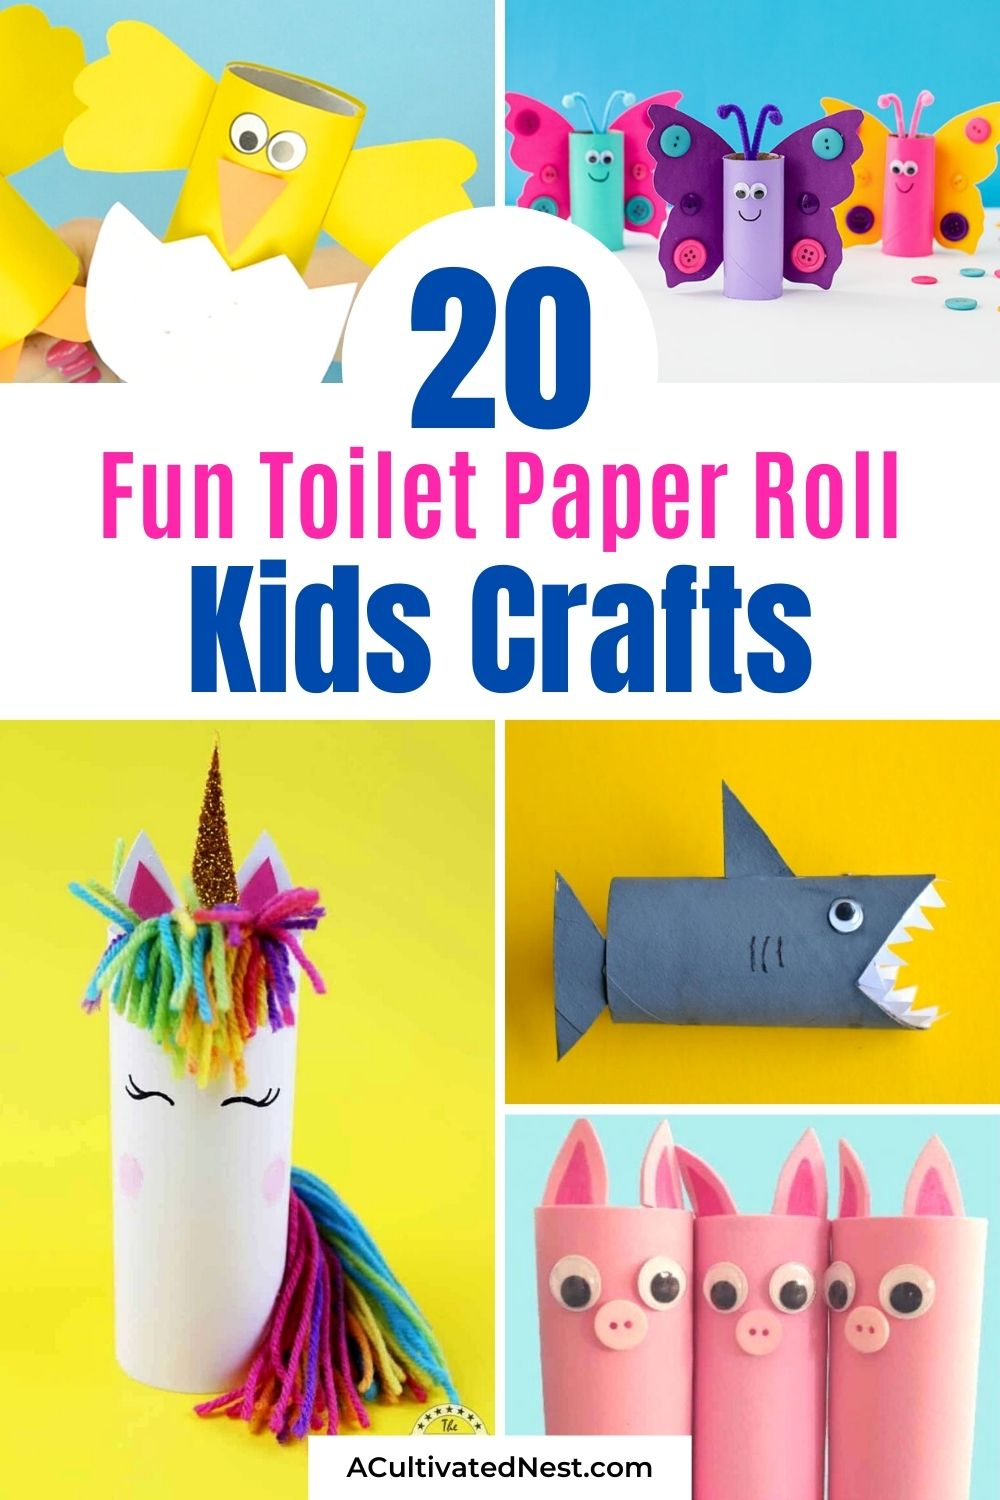 20 Fun Toilet Paper Roll Kids Crafts- A fun and frugal way to keep the kids busy is with some of these 20 fun toilet paper roll kids crafts! They're the perfect way to spend a rainy afternoon! | frugal kids activities, #toiletPaperRollCrafts #kidsCrafts #craftsForKids #kidsActivities #ACultivatedNest